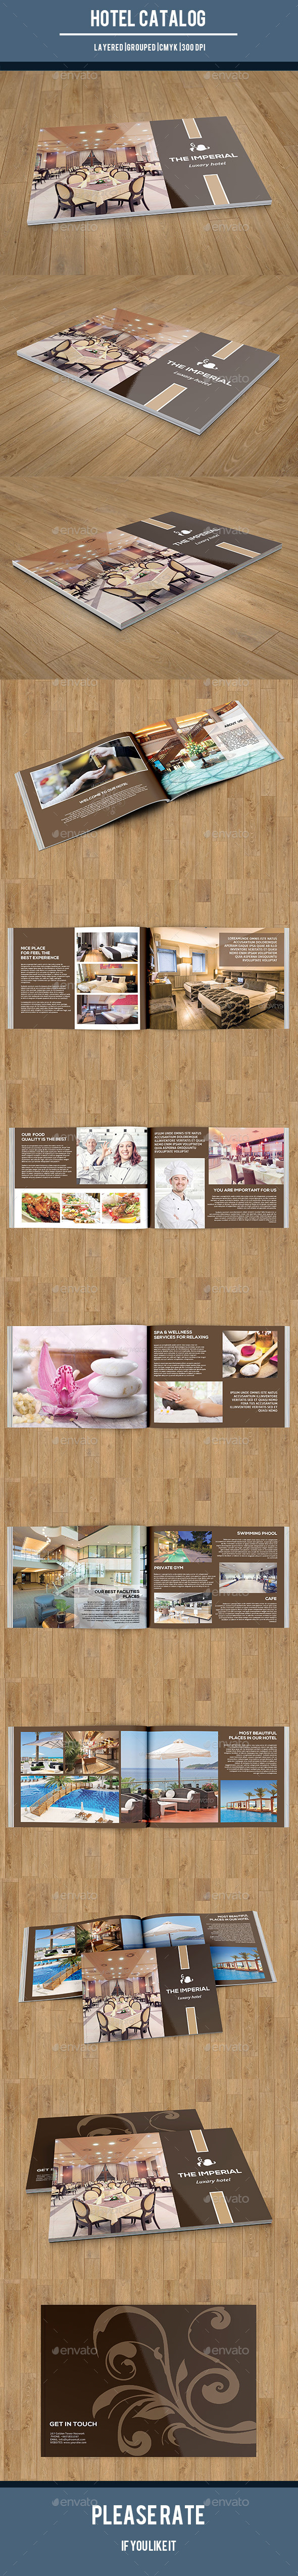 Hotel Business Catalog/Brochure-V156